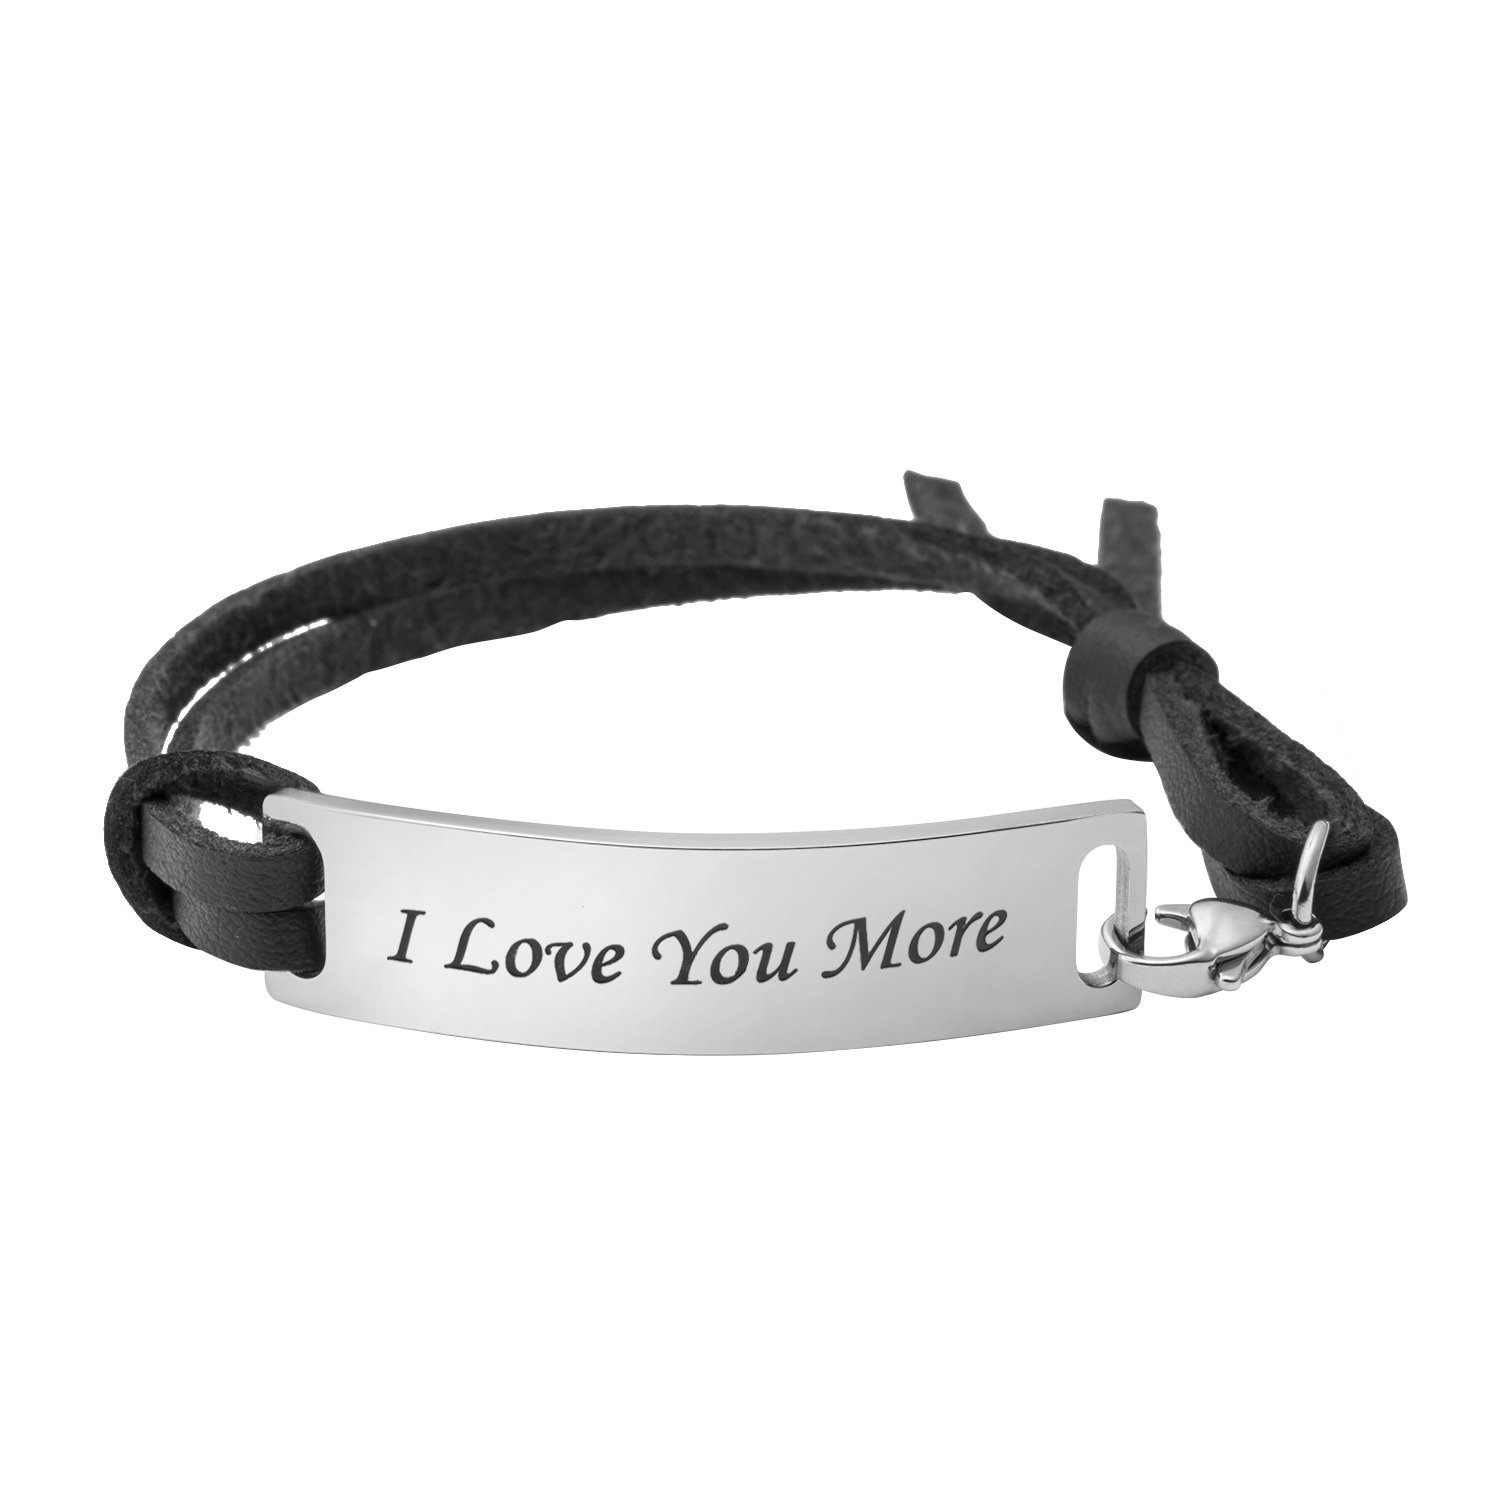 Yiyang Bracelet for Mother Engraved Inspirational Leather Bracelet Hand Stamped Metal Charm Jewelry